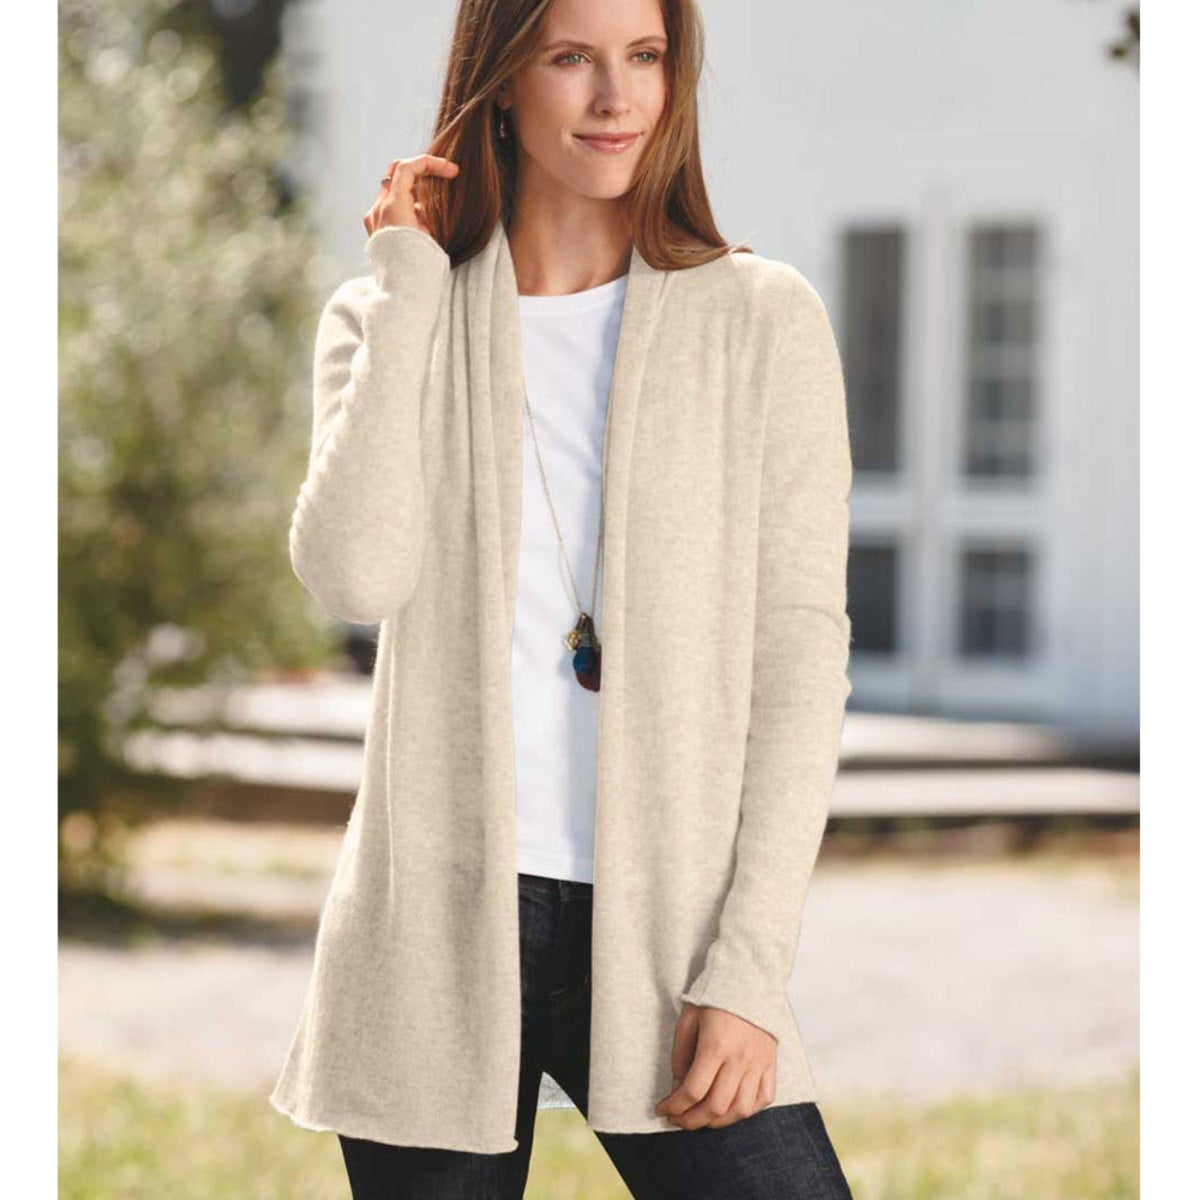 Lightweight Cashmere Duster Cardigan - Cream - L (12-14)